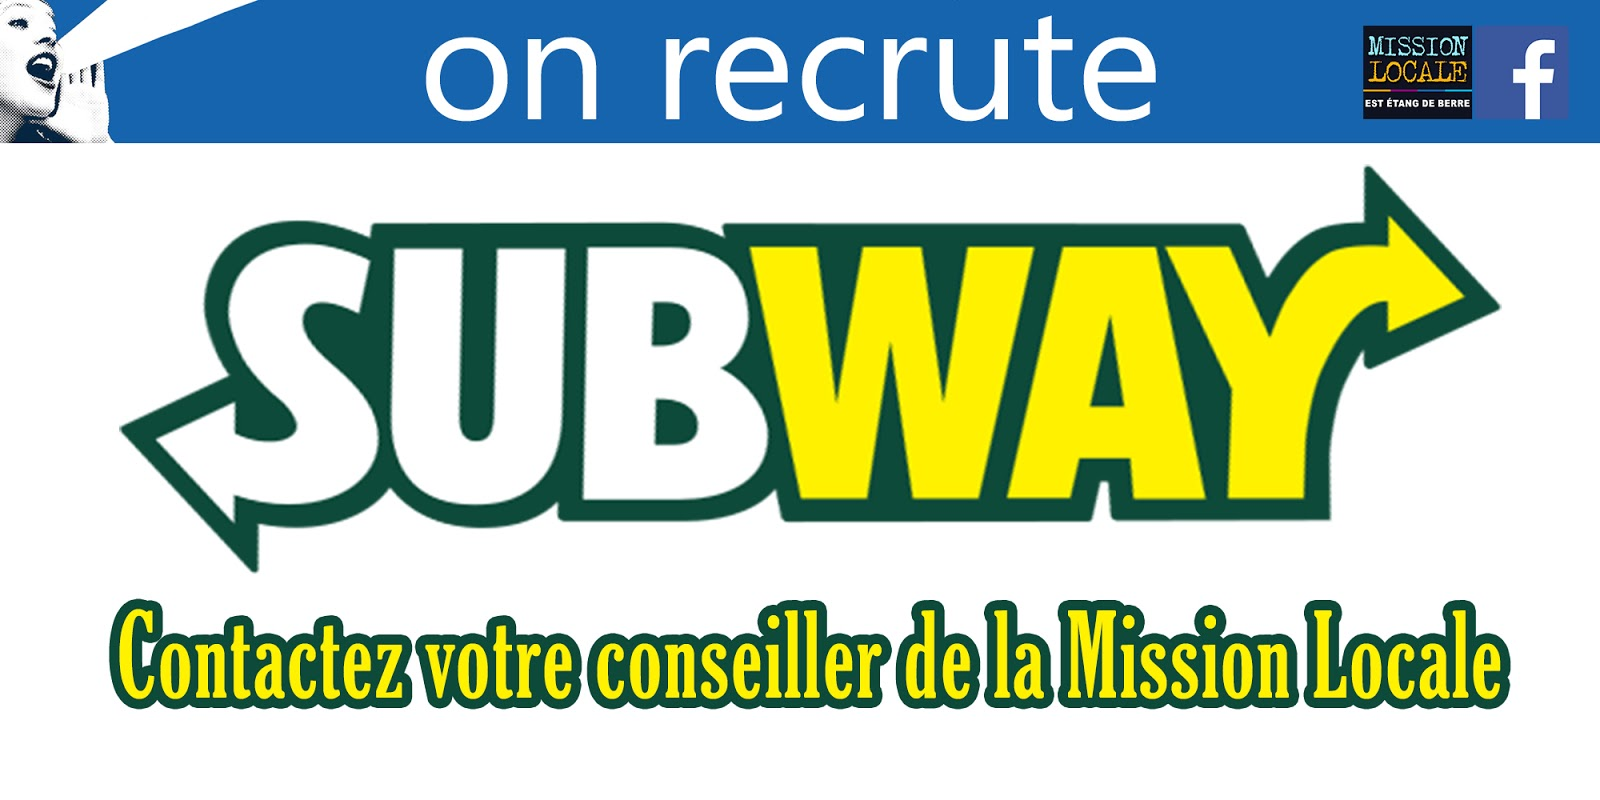 Subway recrute for Mission locale salon de provence